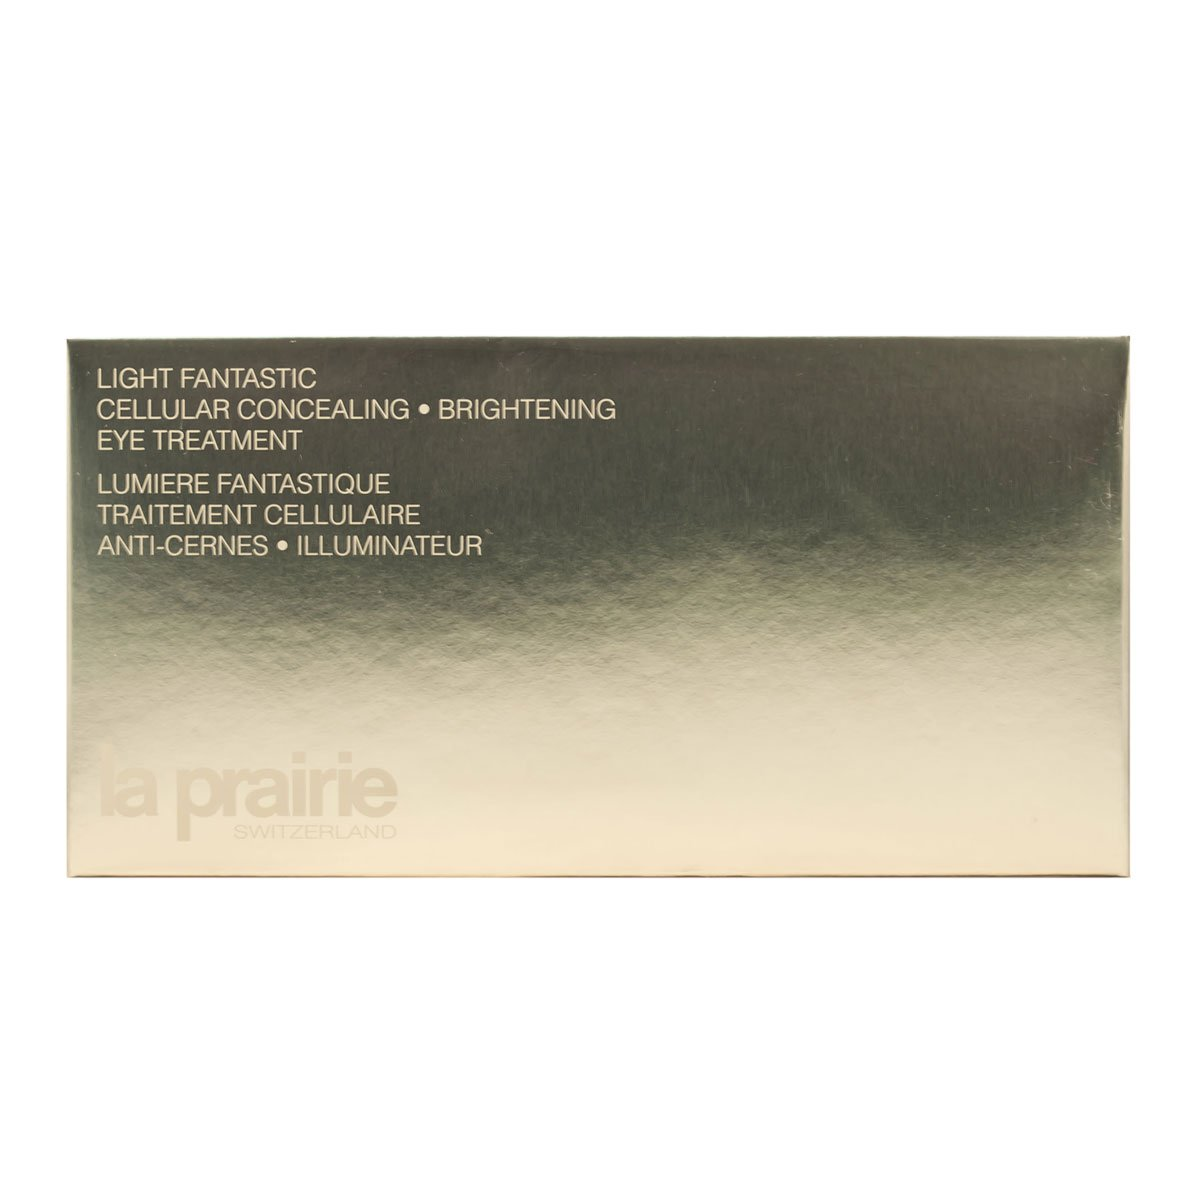 La Prairie - Complexion Light Fantastic Cellular Concealing Brightening Eye Treatment U-SC-1864 LPR18152